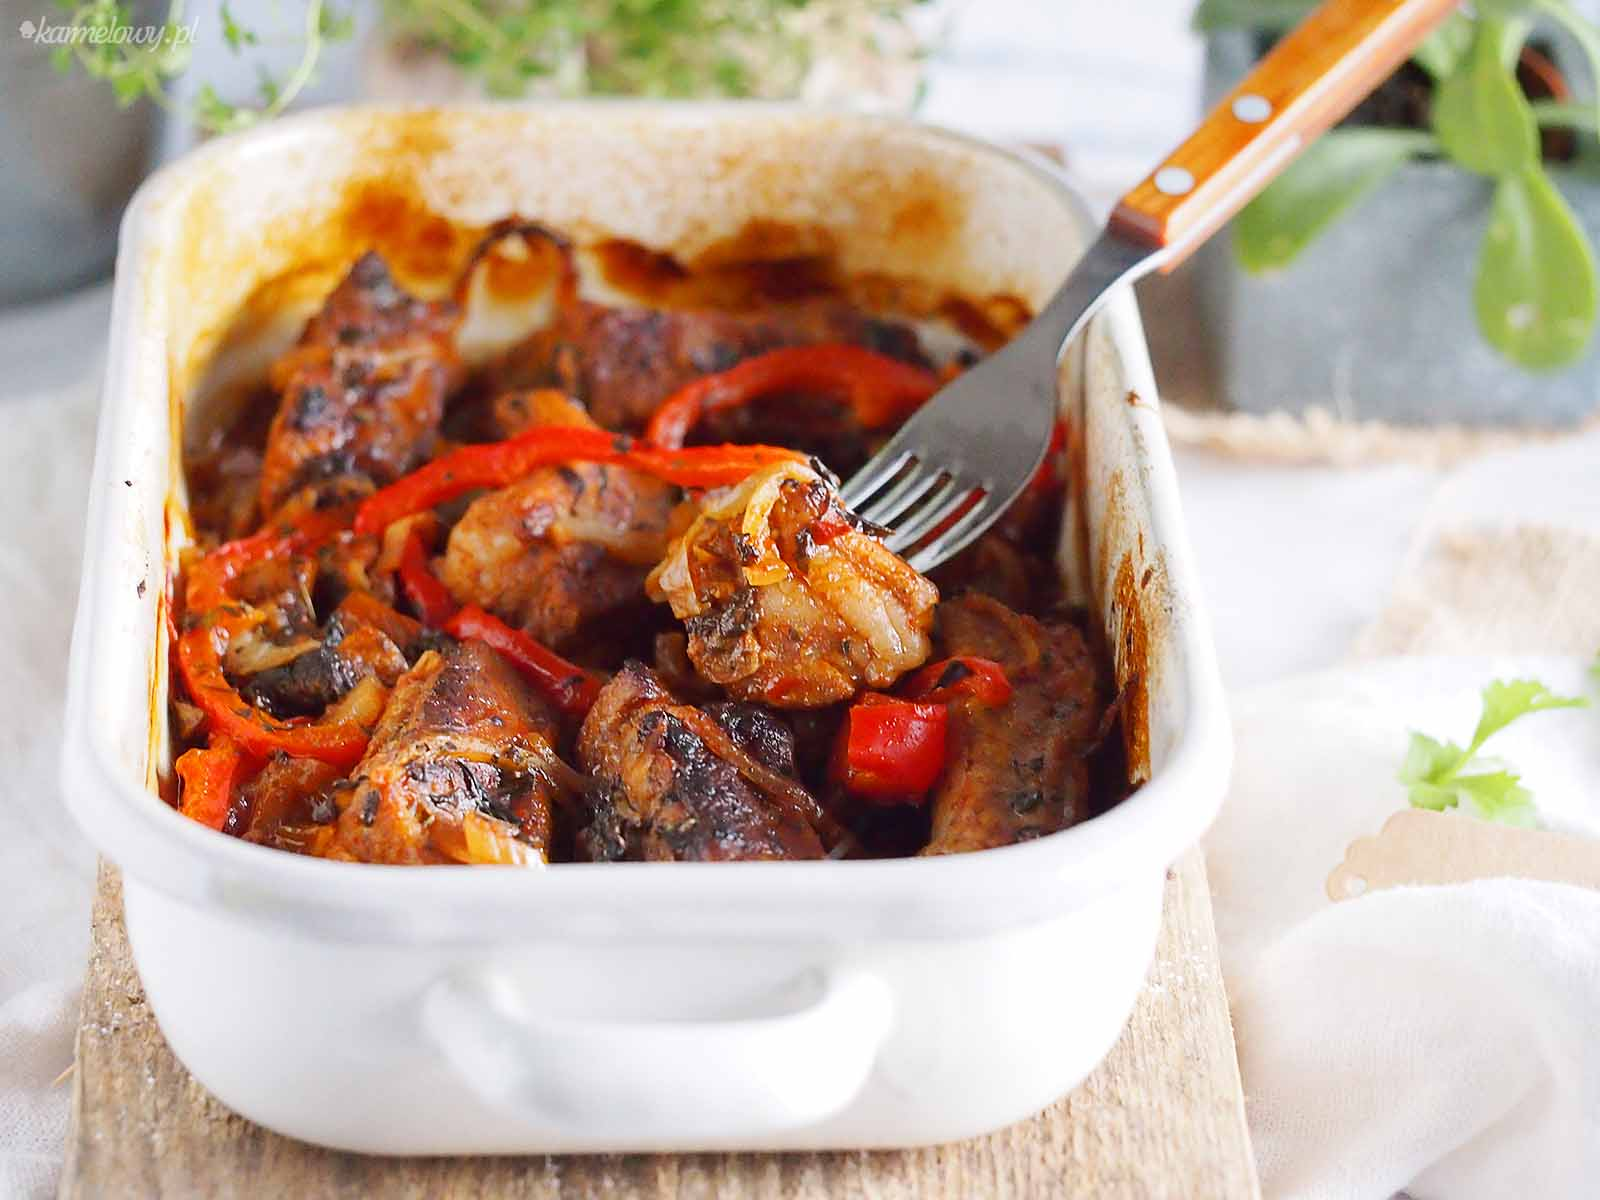 zeberka-pieczone-z-grzybami-i-papryka-Baked-ribs-with-mushrooms-and-bell-pepper